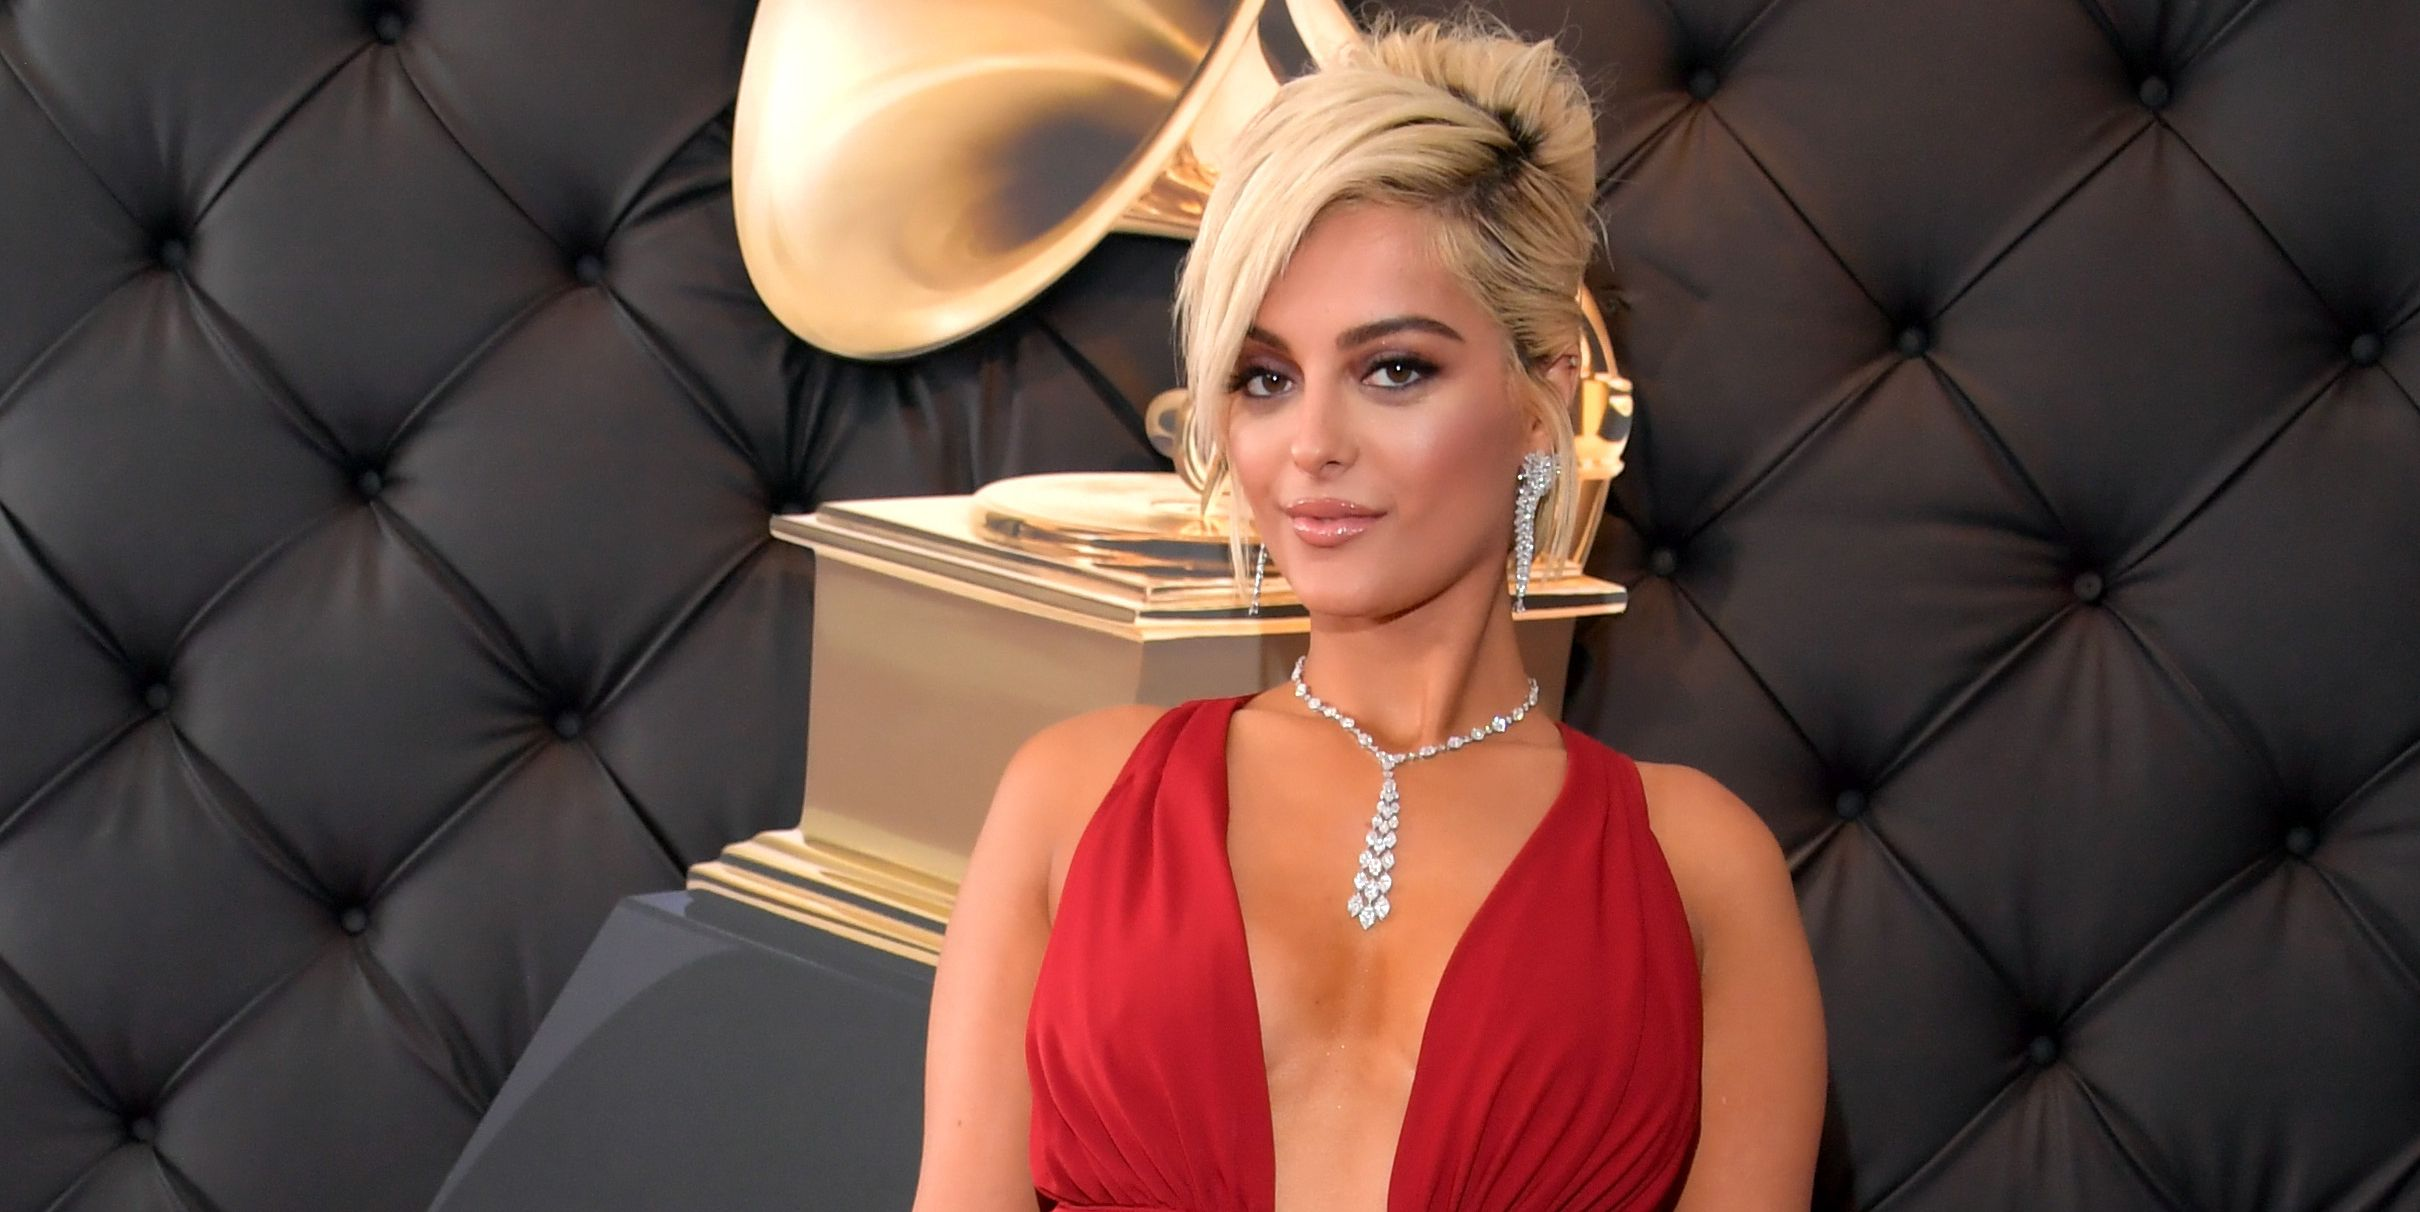 Bebe Rexha Looks Amazing at the Grammys, No Thanks to the Designers Who Wouldn't Dress Her